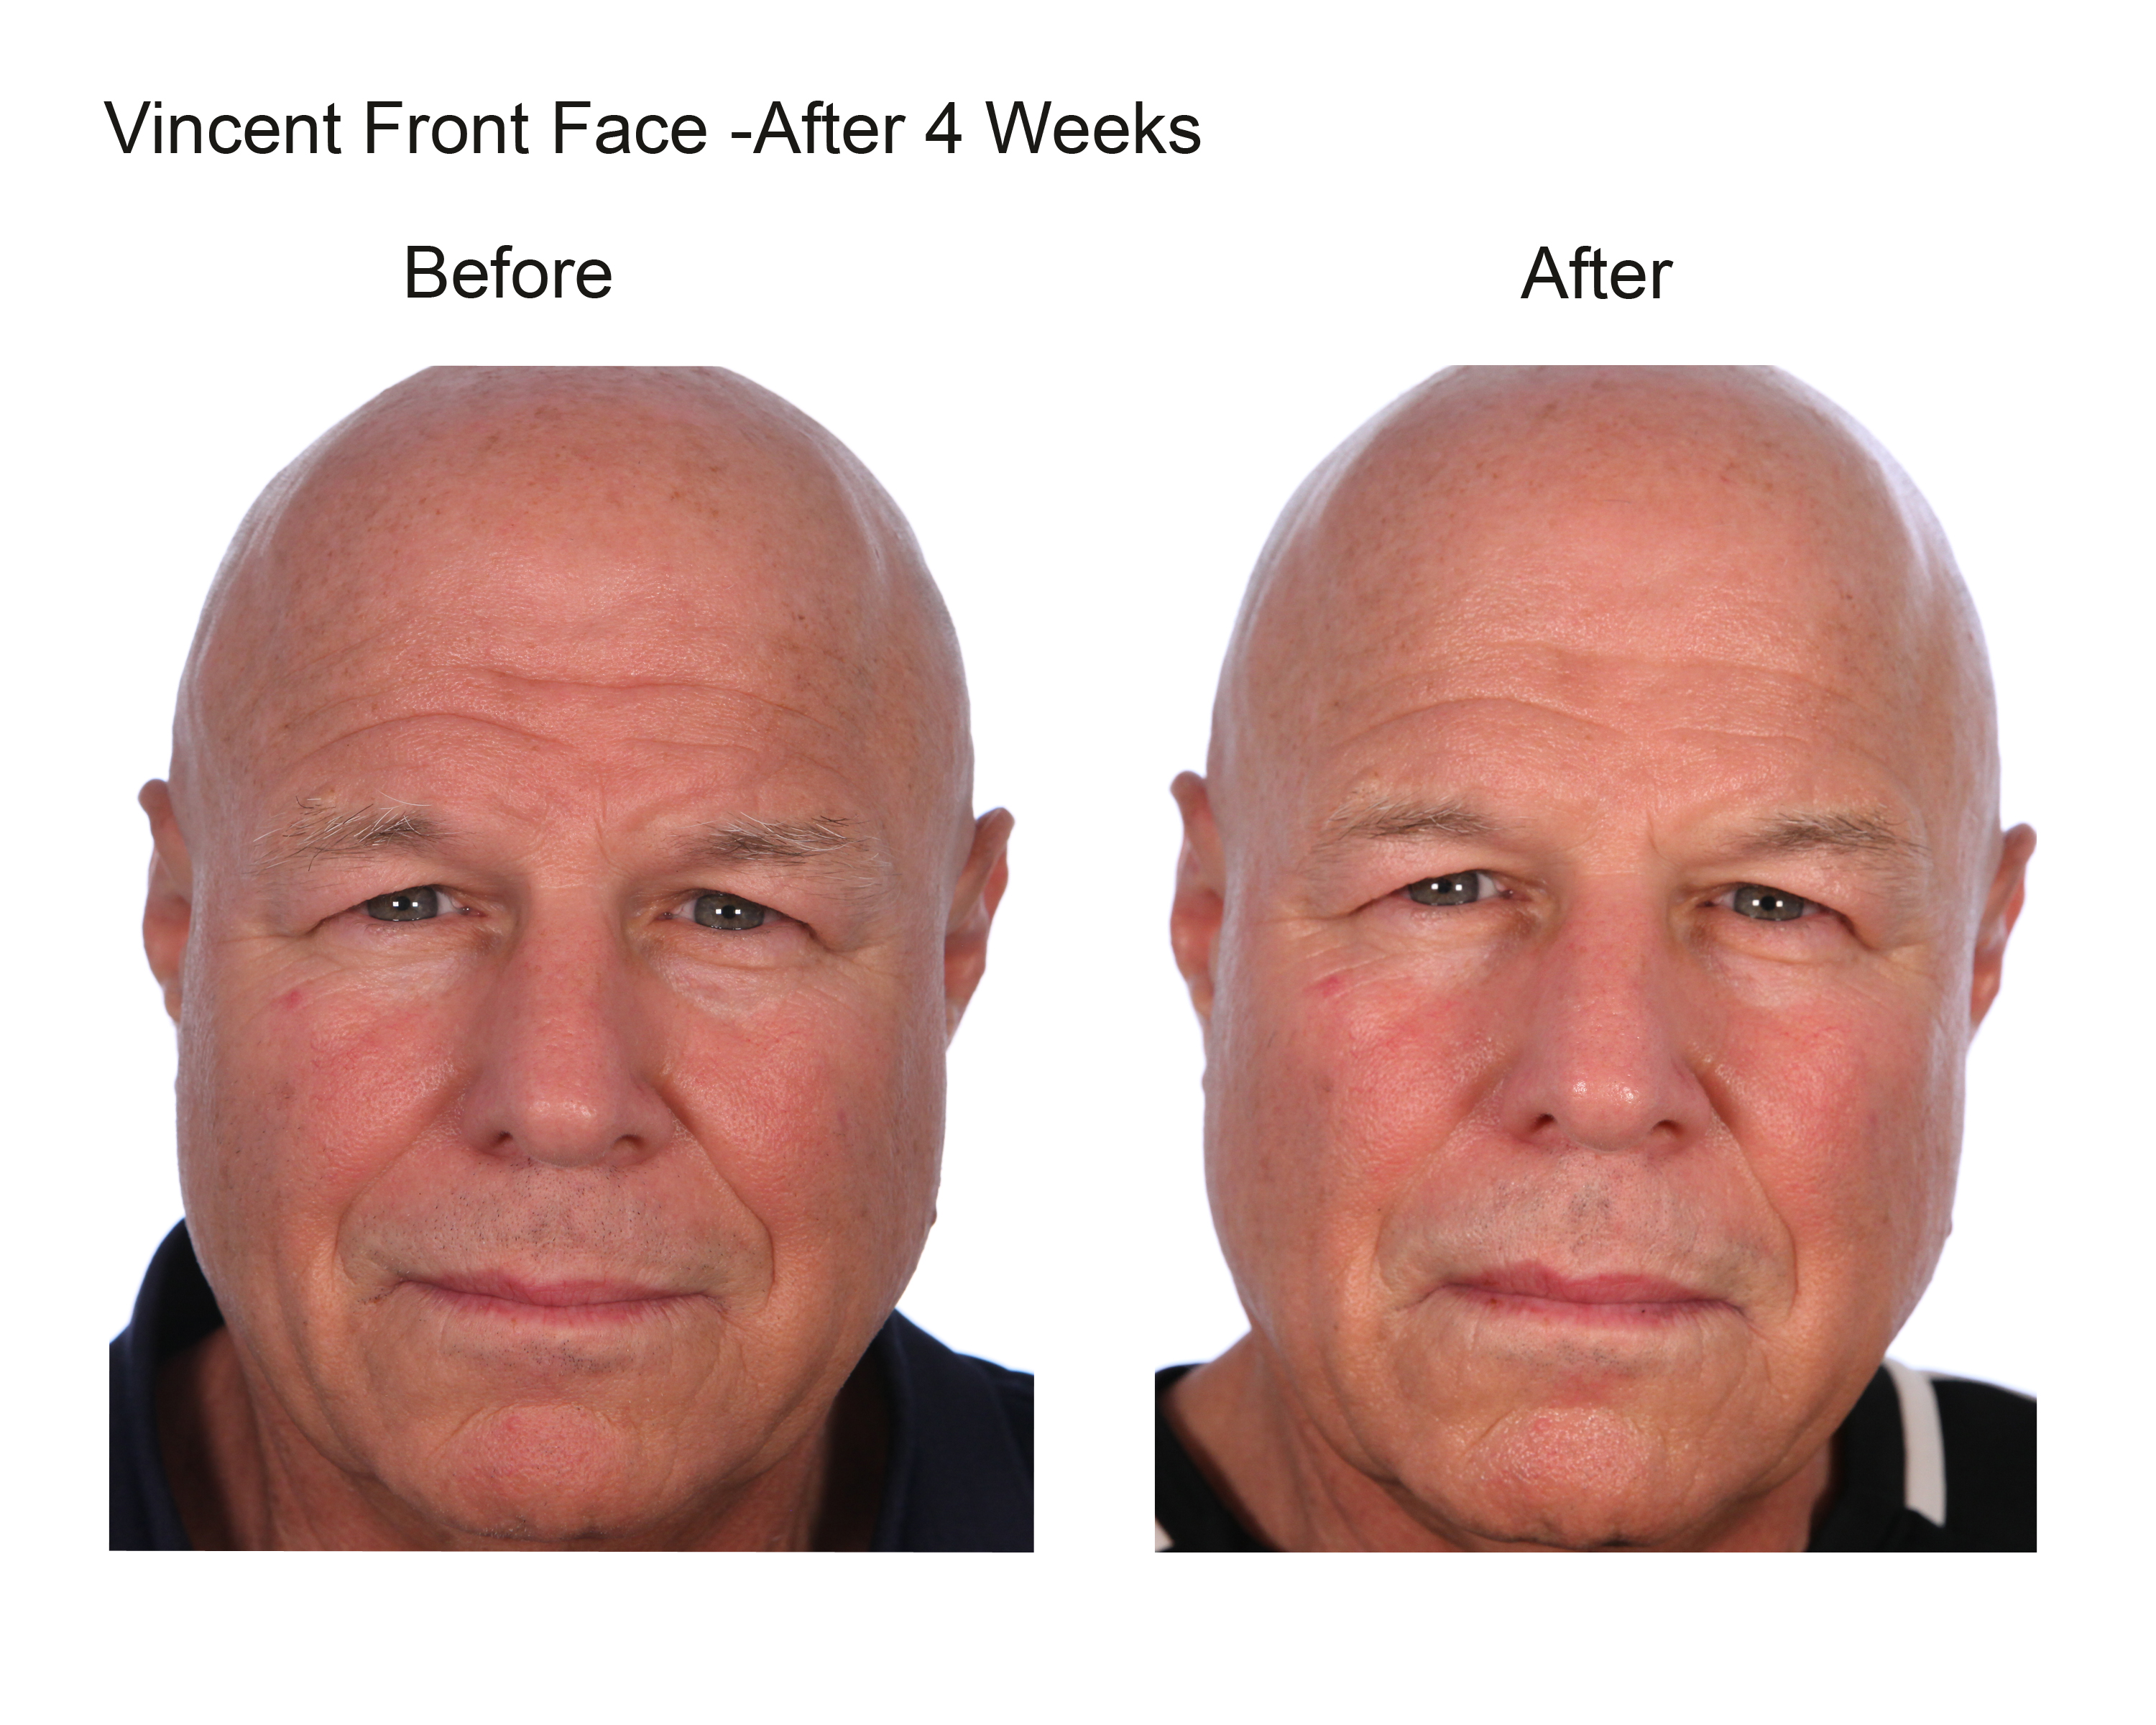 Vincent Front Face After 4 Weeks